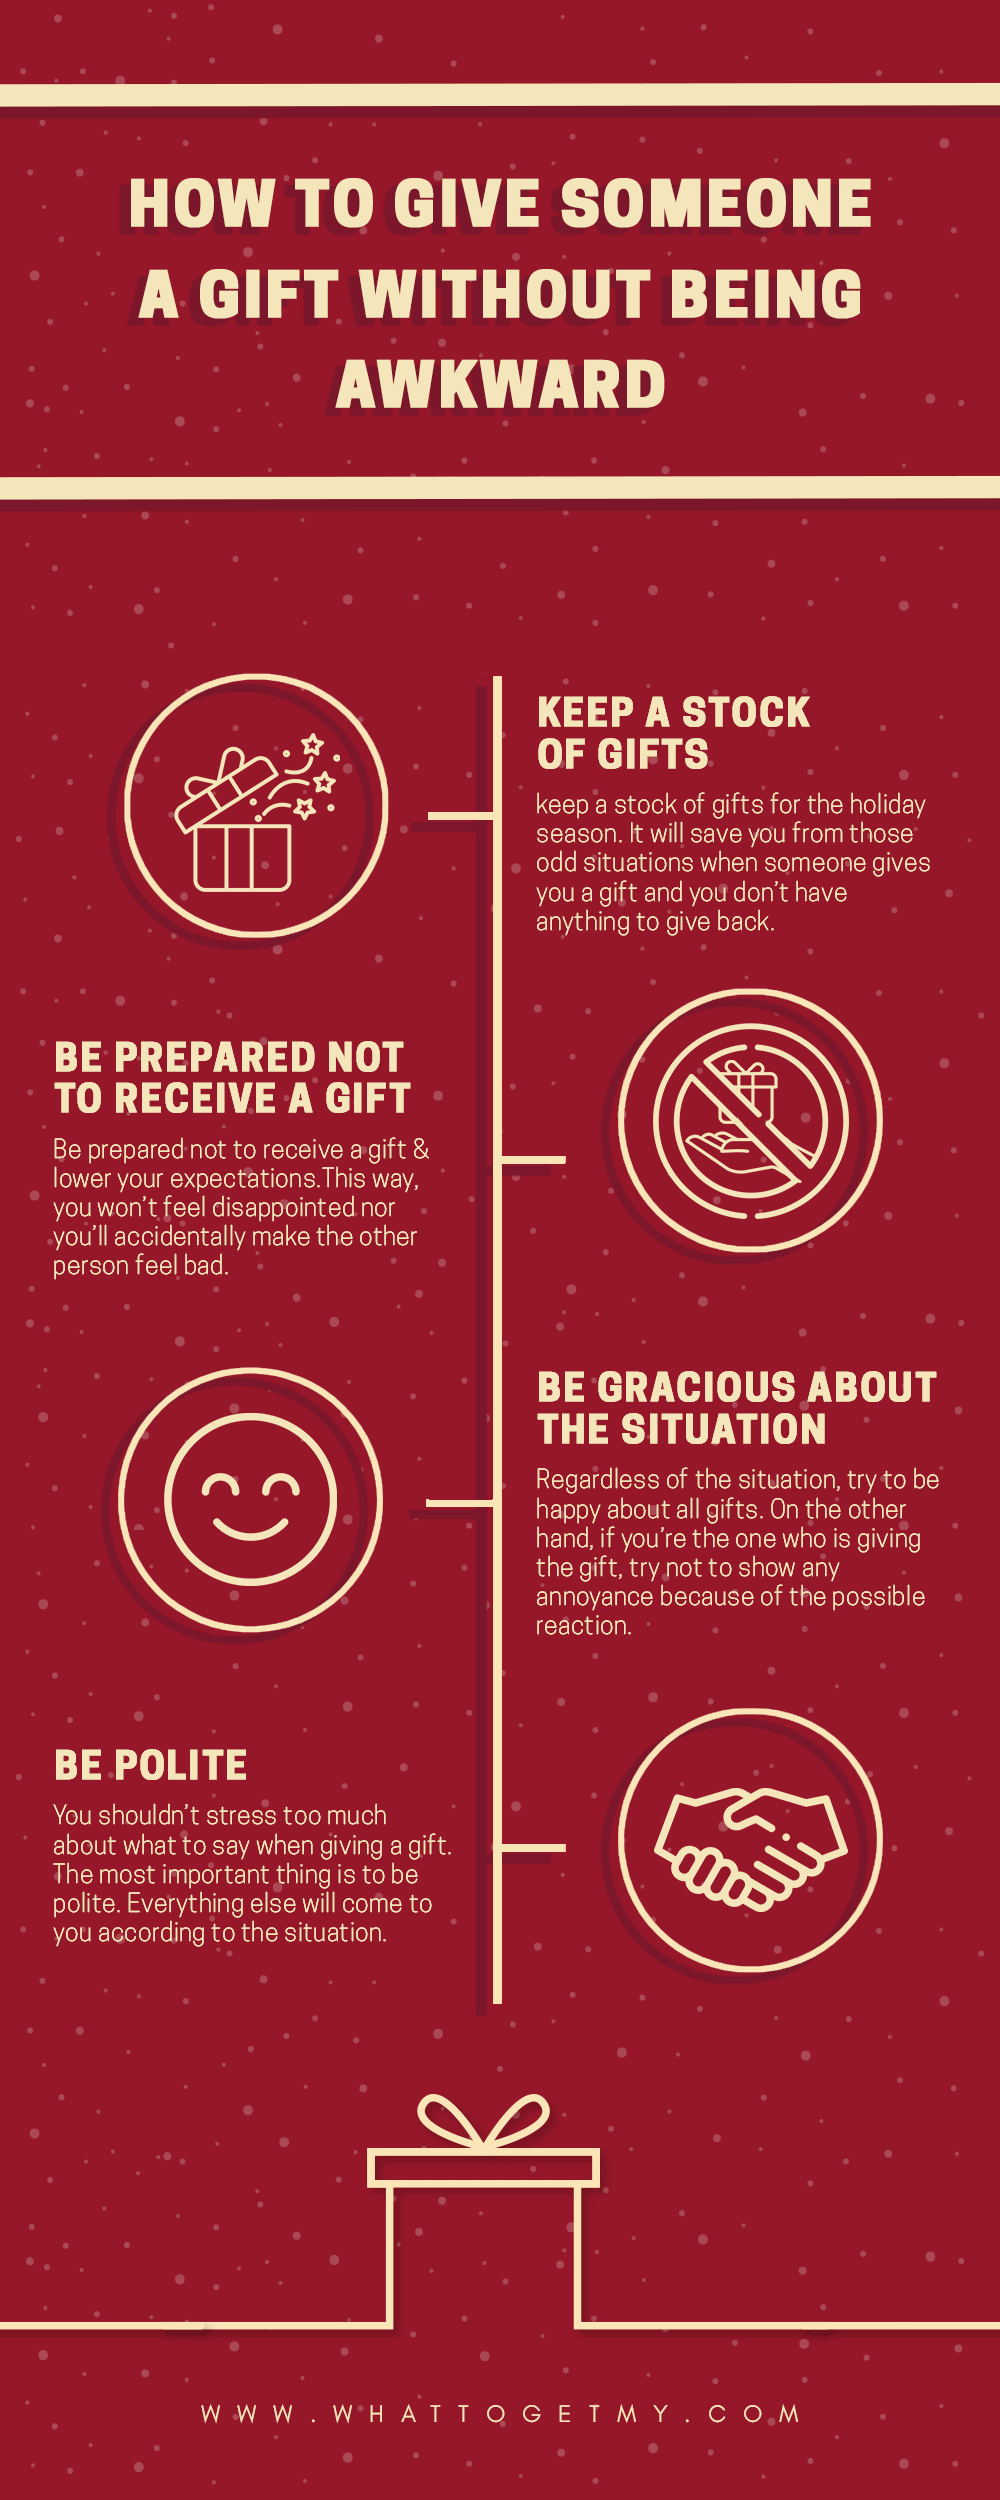 Infographic How to Give Someone a Gift Without Being Awkward